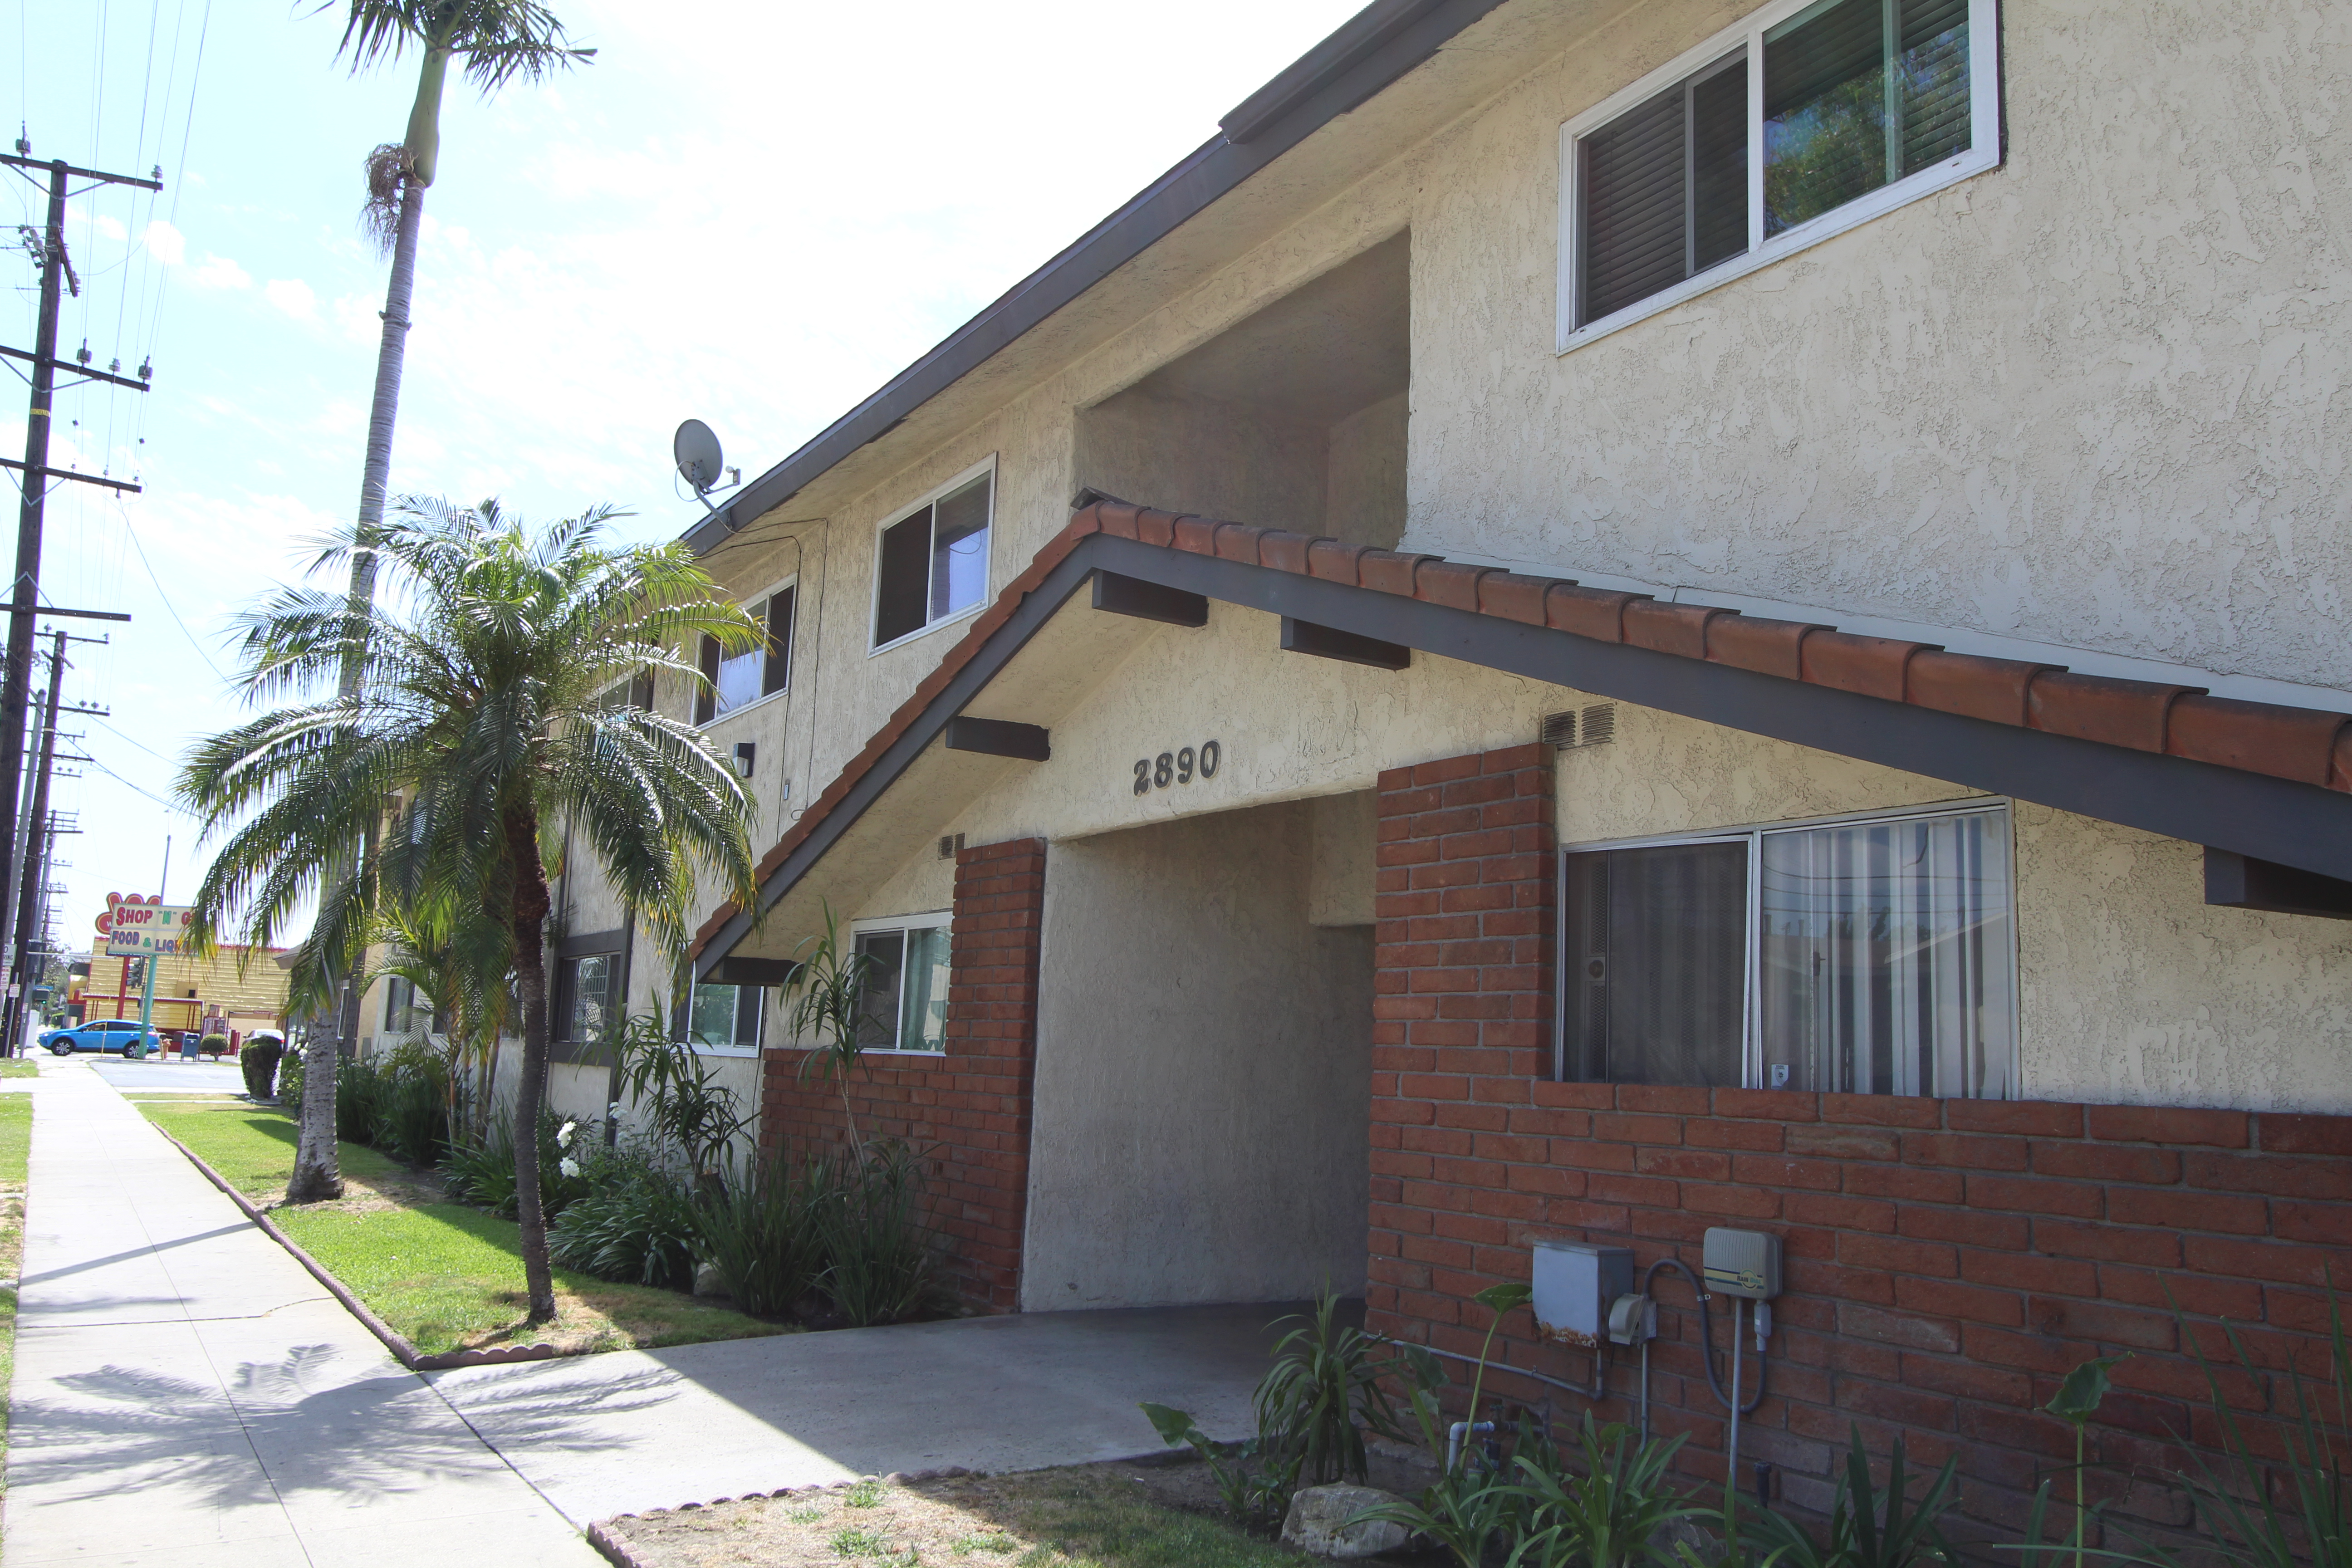 2890 E ARTESIA BLVD., #67, LONG BEAC